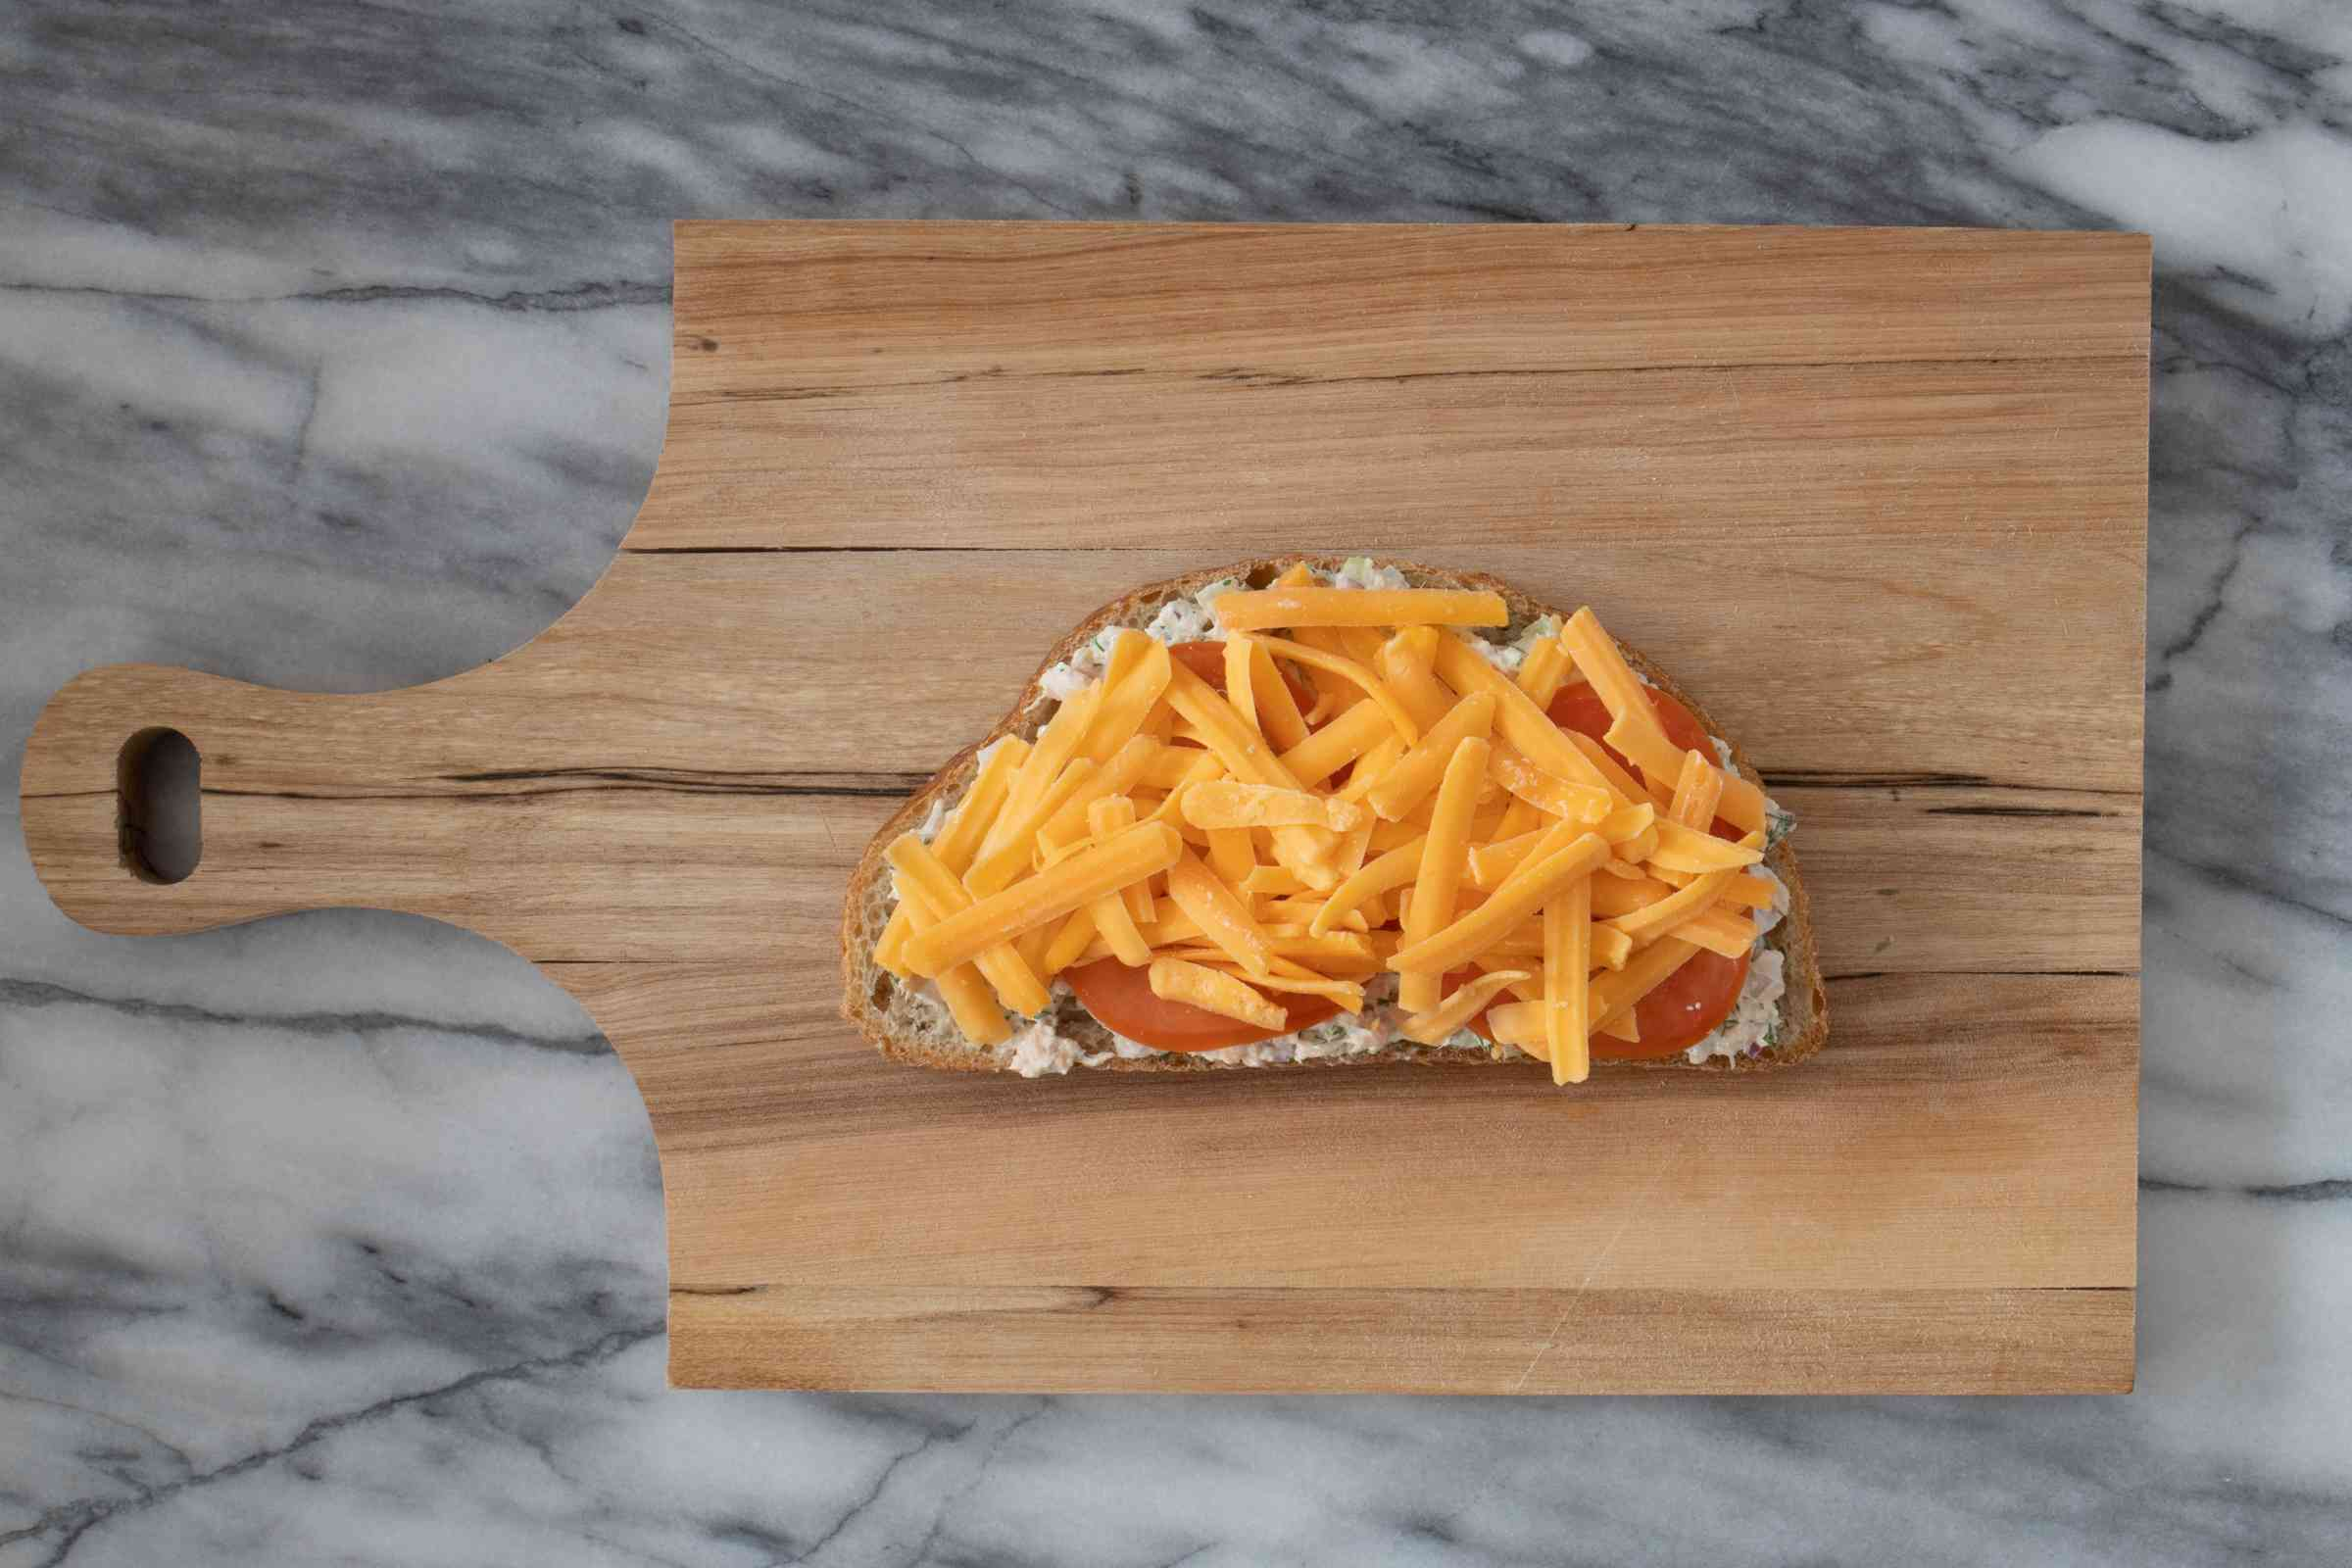 layering tomato and cheese on the tuna melt sandwich